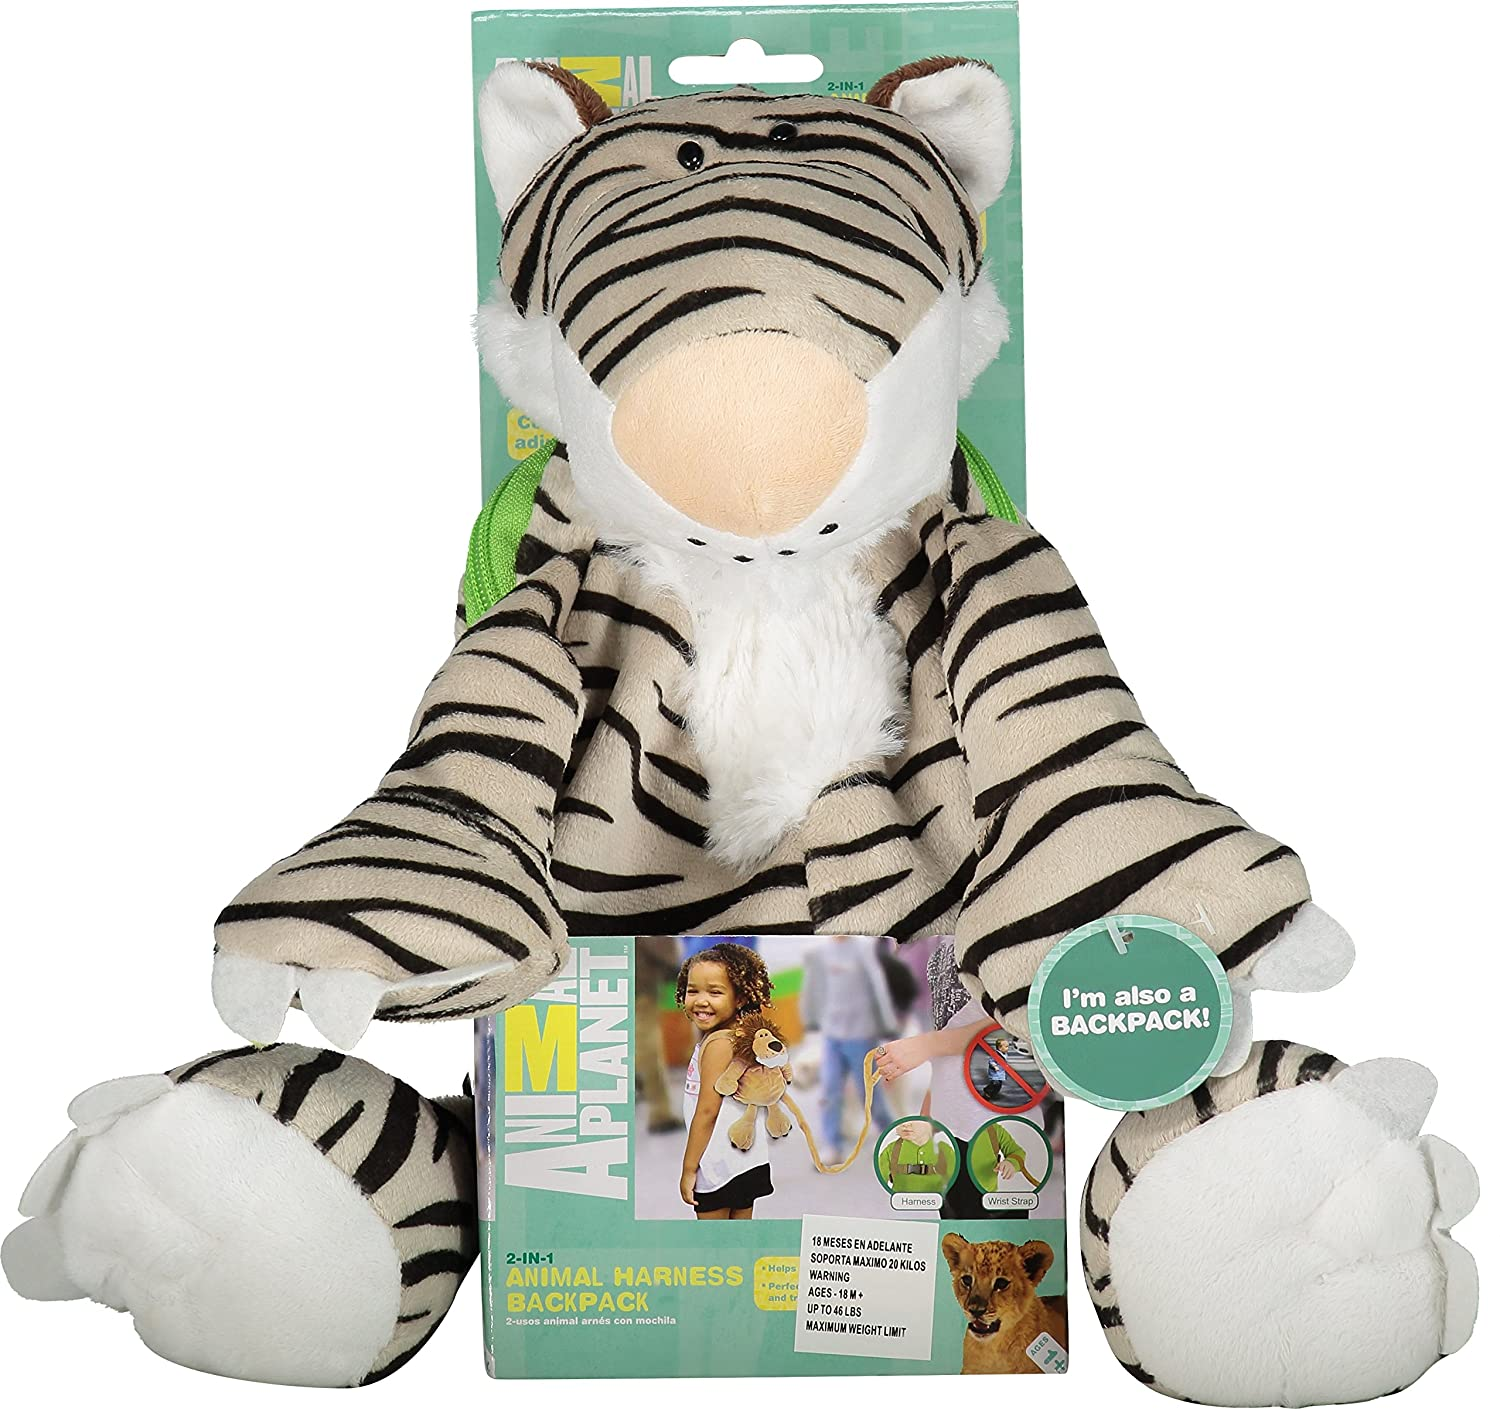 Amazon.com : Animal Planet Baby Backpack with Safety Harness, Tiger : Plush Backpacks : Baby